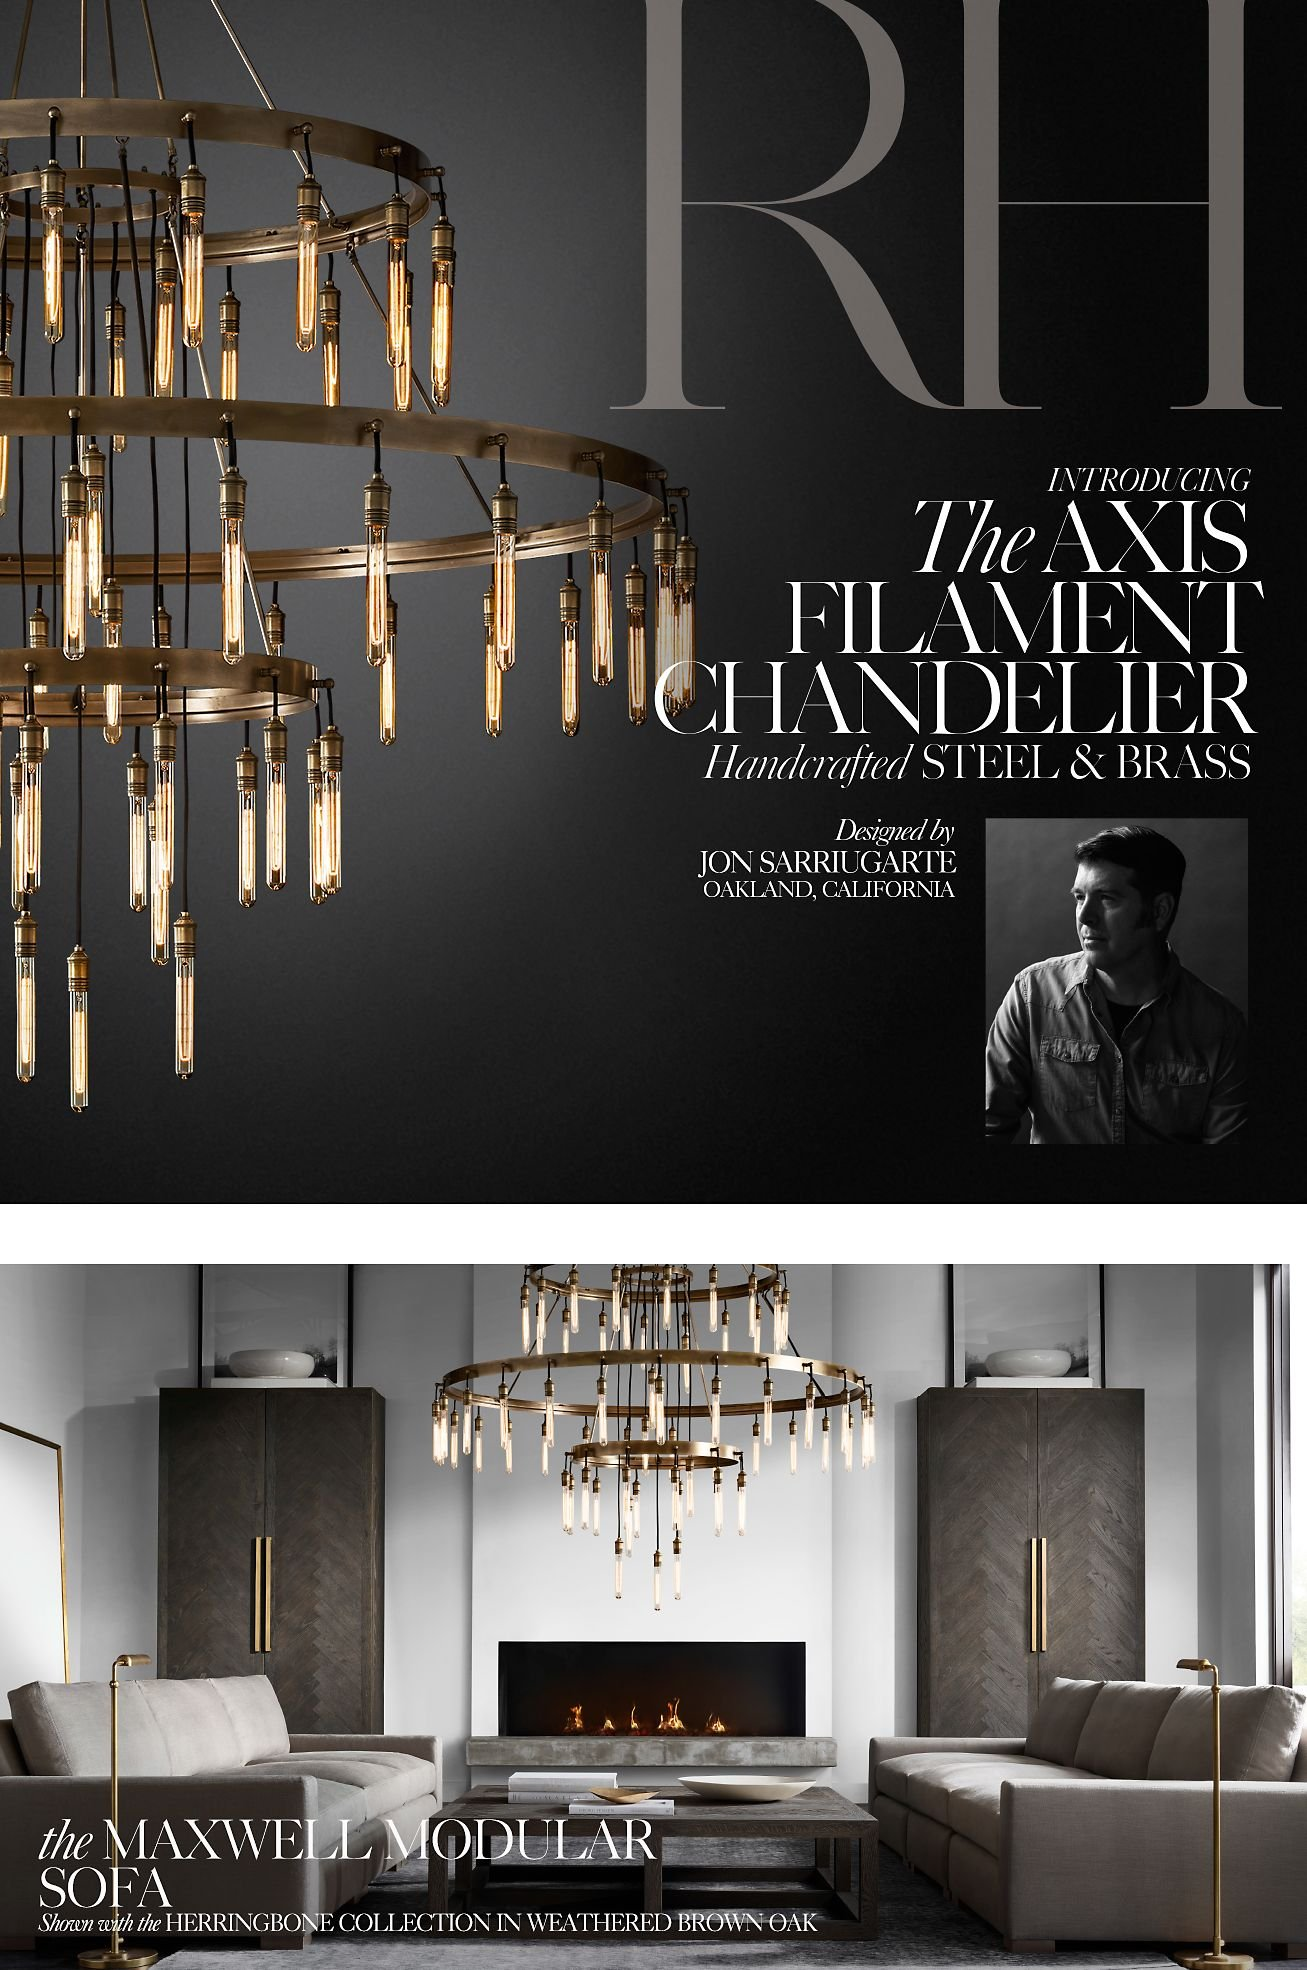 Restoration Hardware Introducing the Axis Filament Chandelier